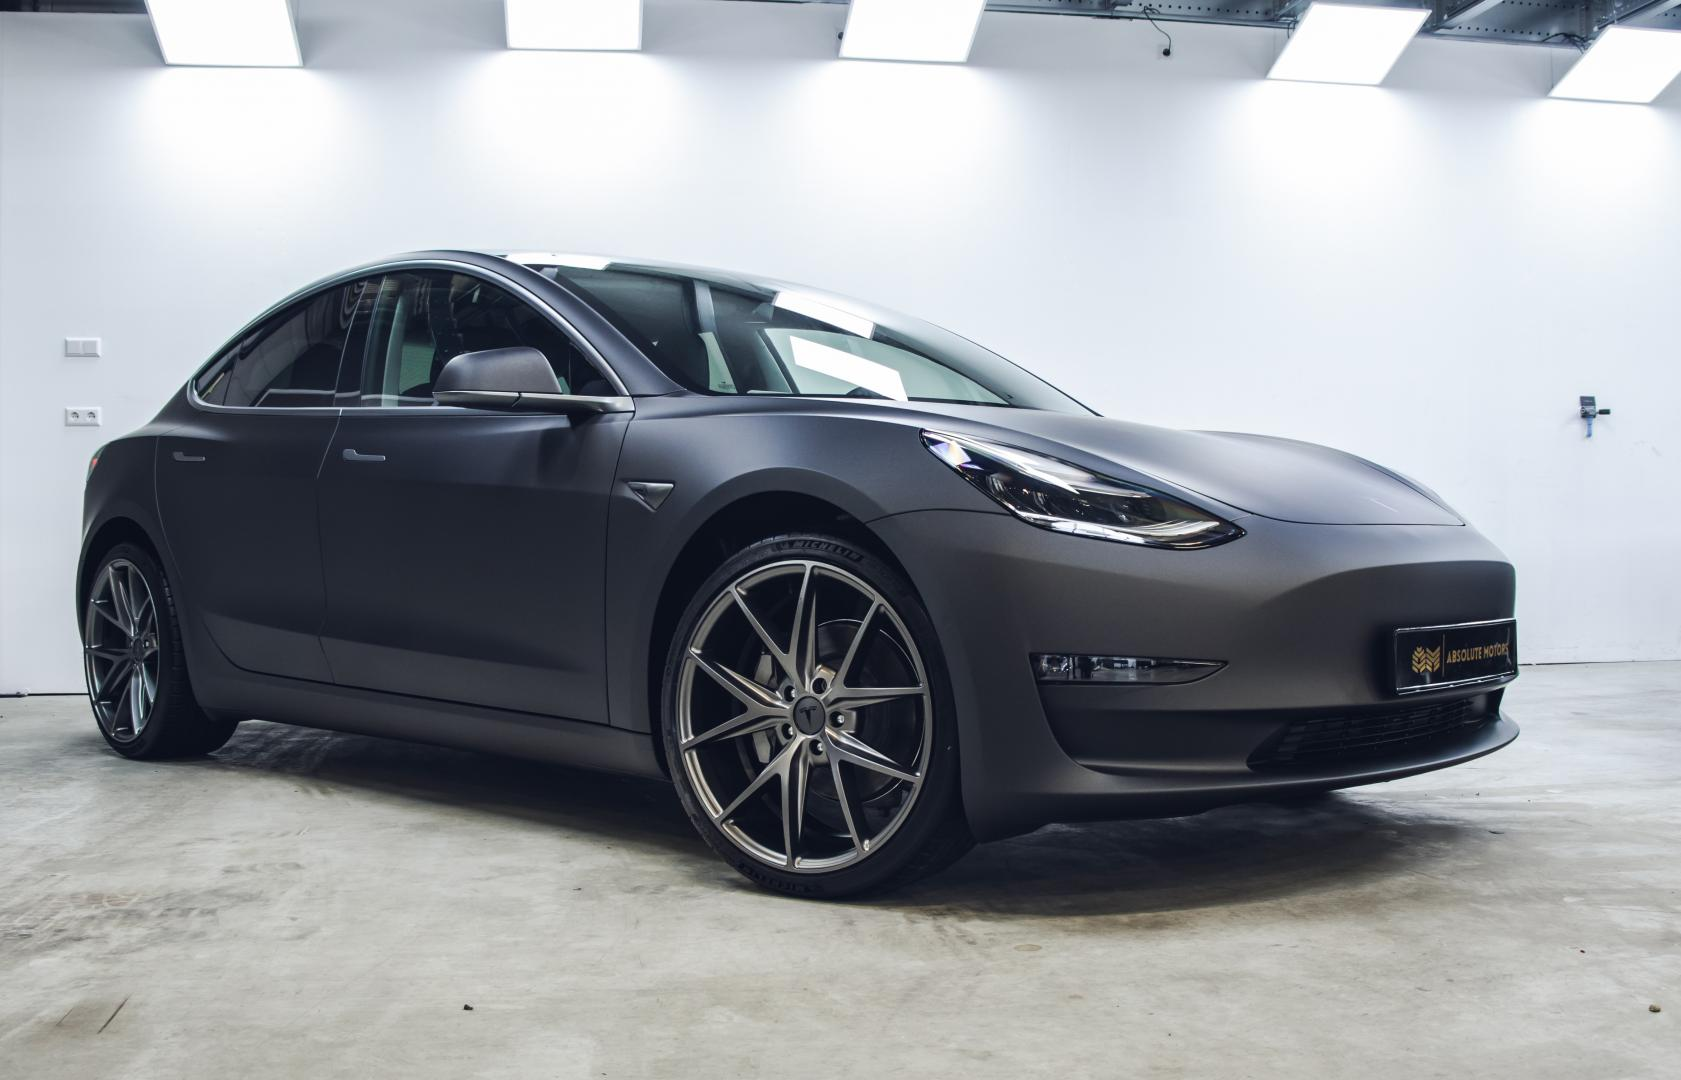 Tesla Model 3 matzwart